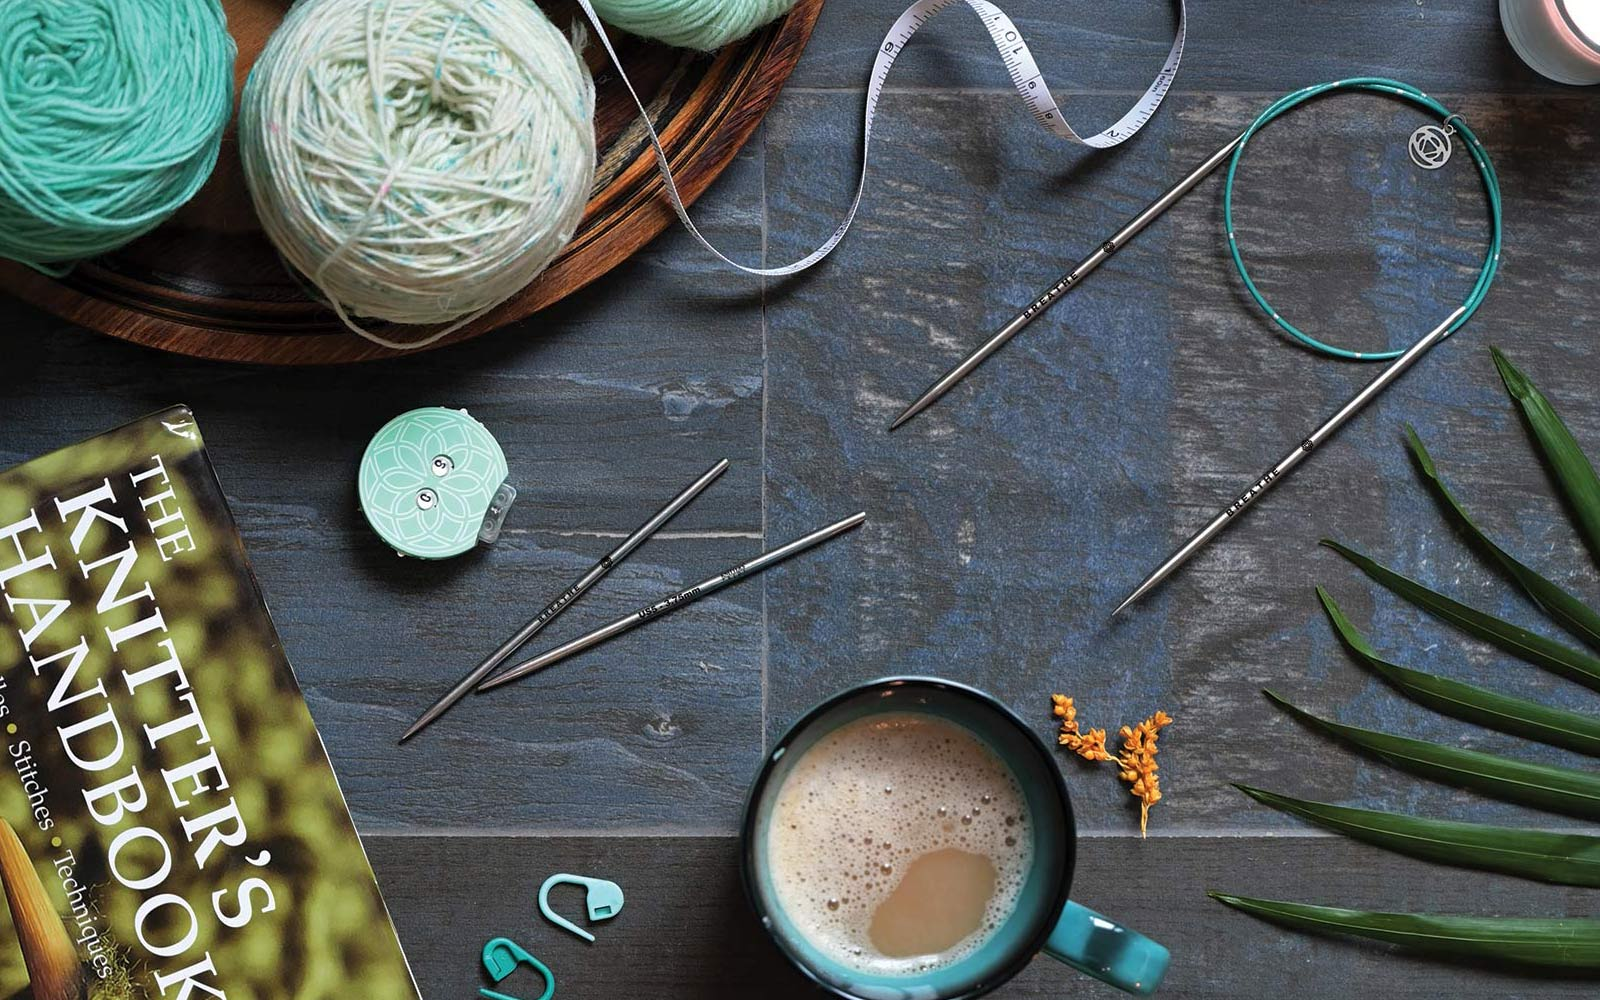 Knitter's Pride Mindful Collection: Inspire your creativity with this intentionally crafted line of knitting needles and accessories!